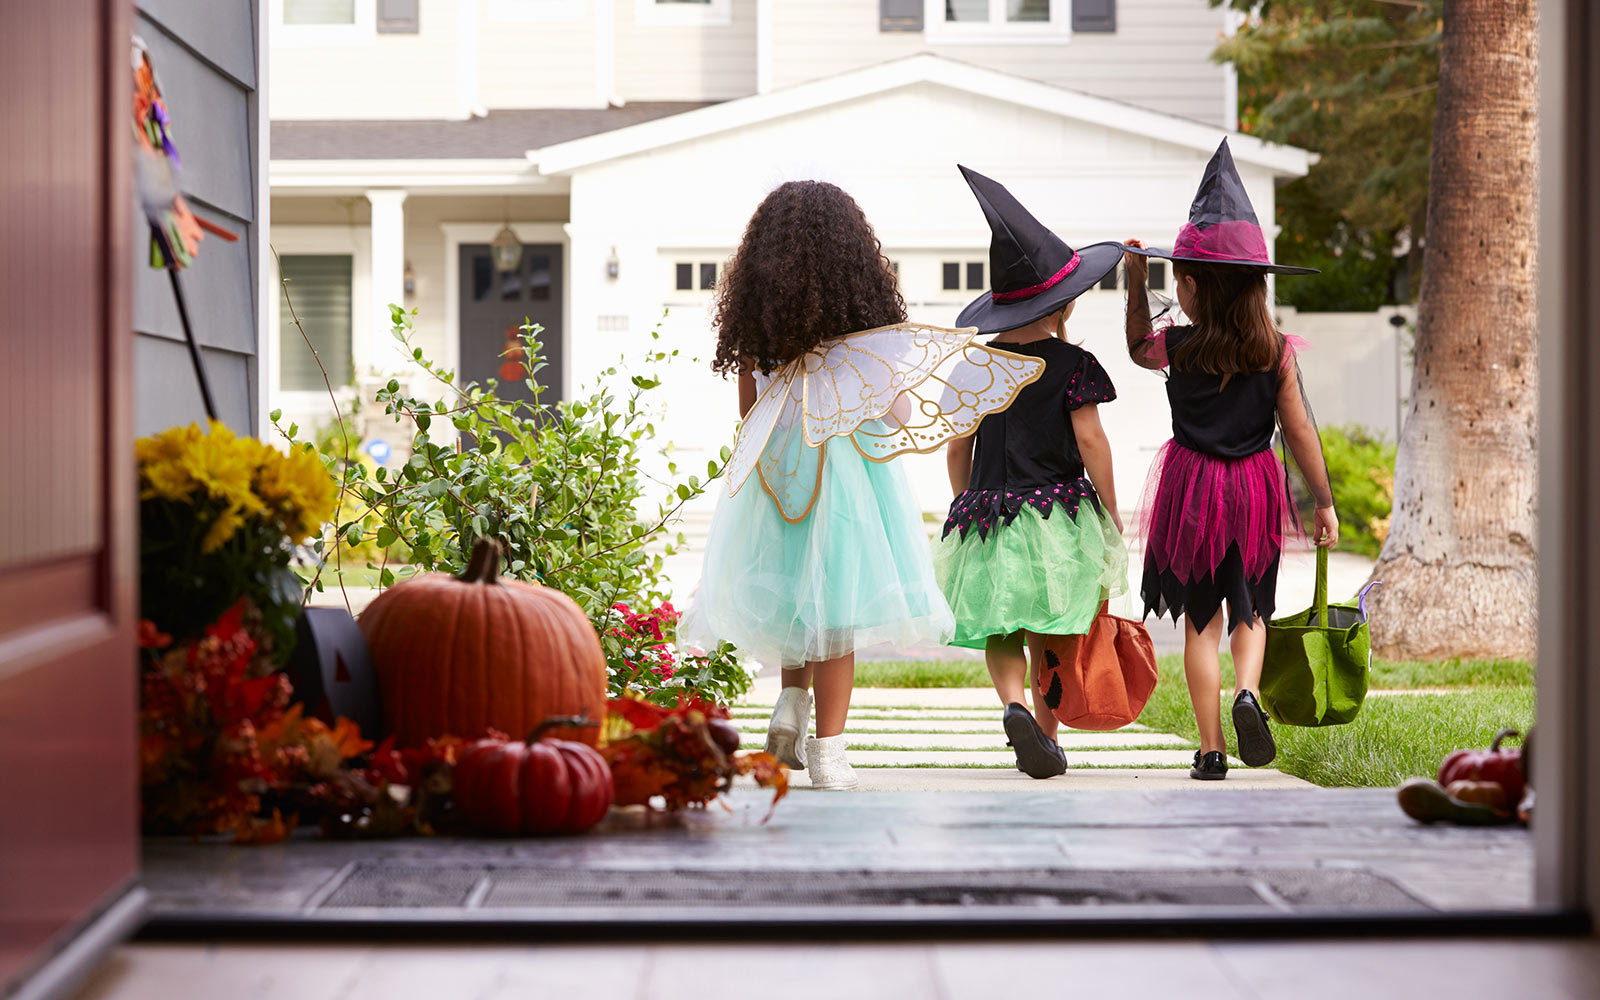 Best Cities for Trick-or-Treating